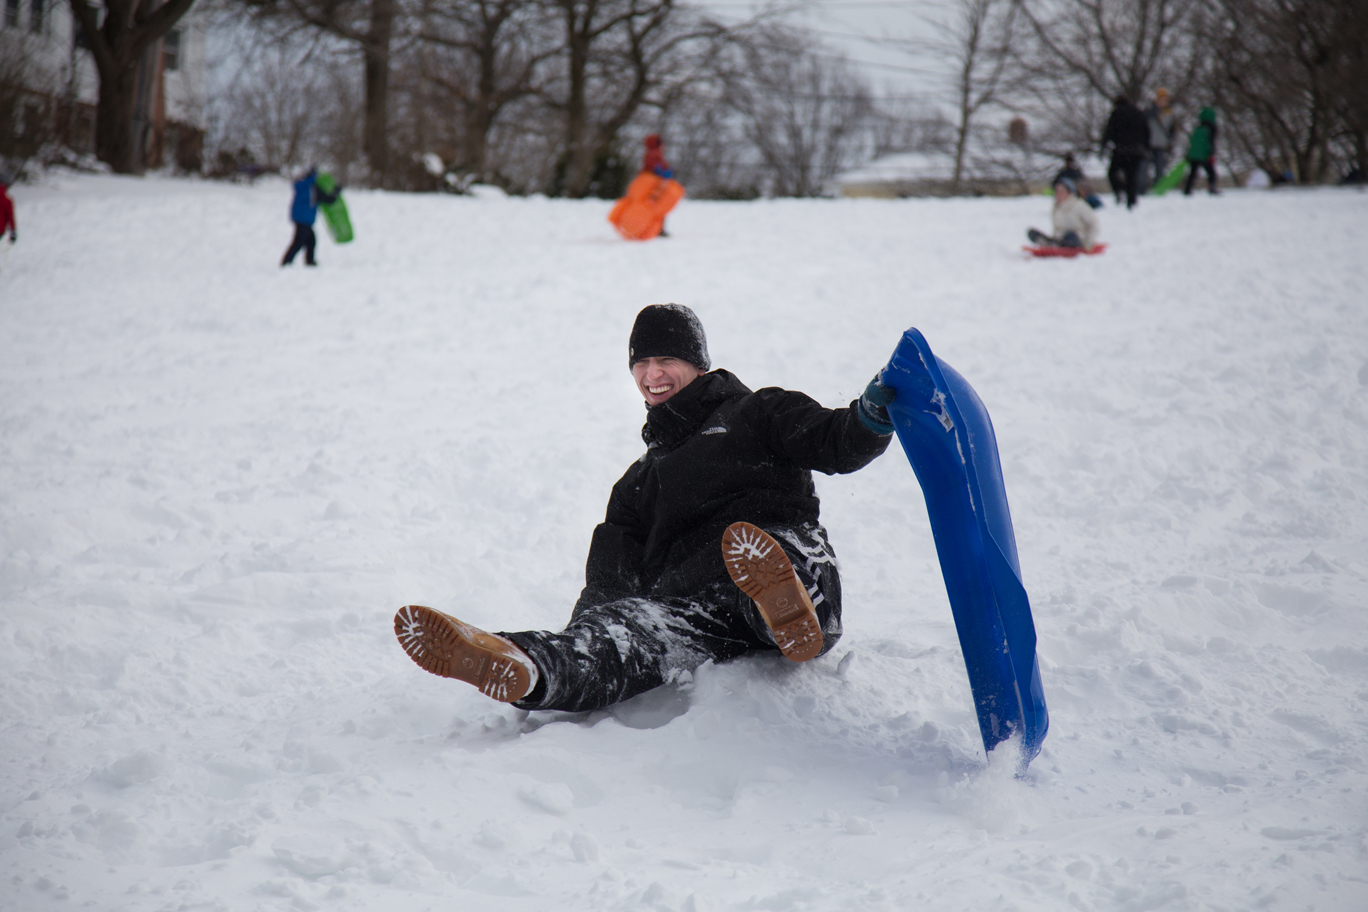 Image: Jonah Lundberg of Allston, Mass., topples off of his sled on Corey Hill in Brighton on Saturday afternoon. (Photo by Alexa Gonzalez Wagner/BU News Service)